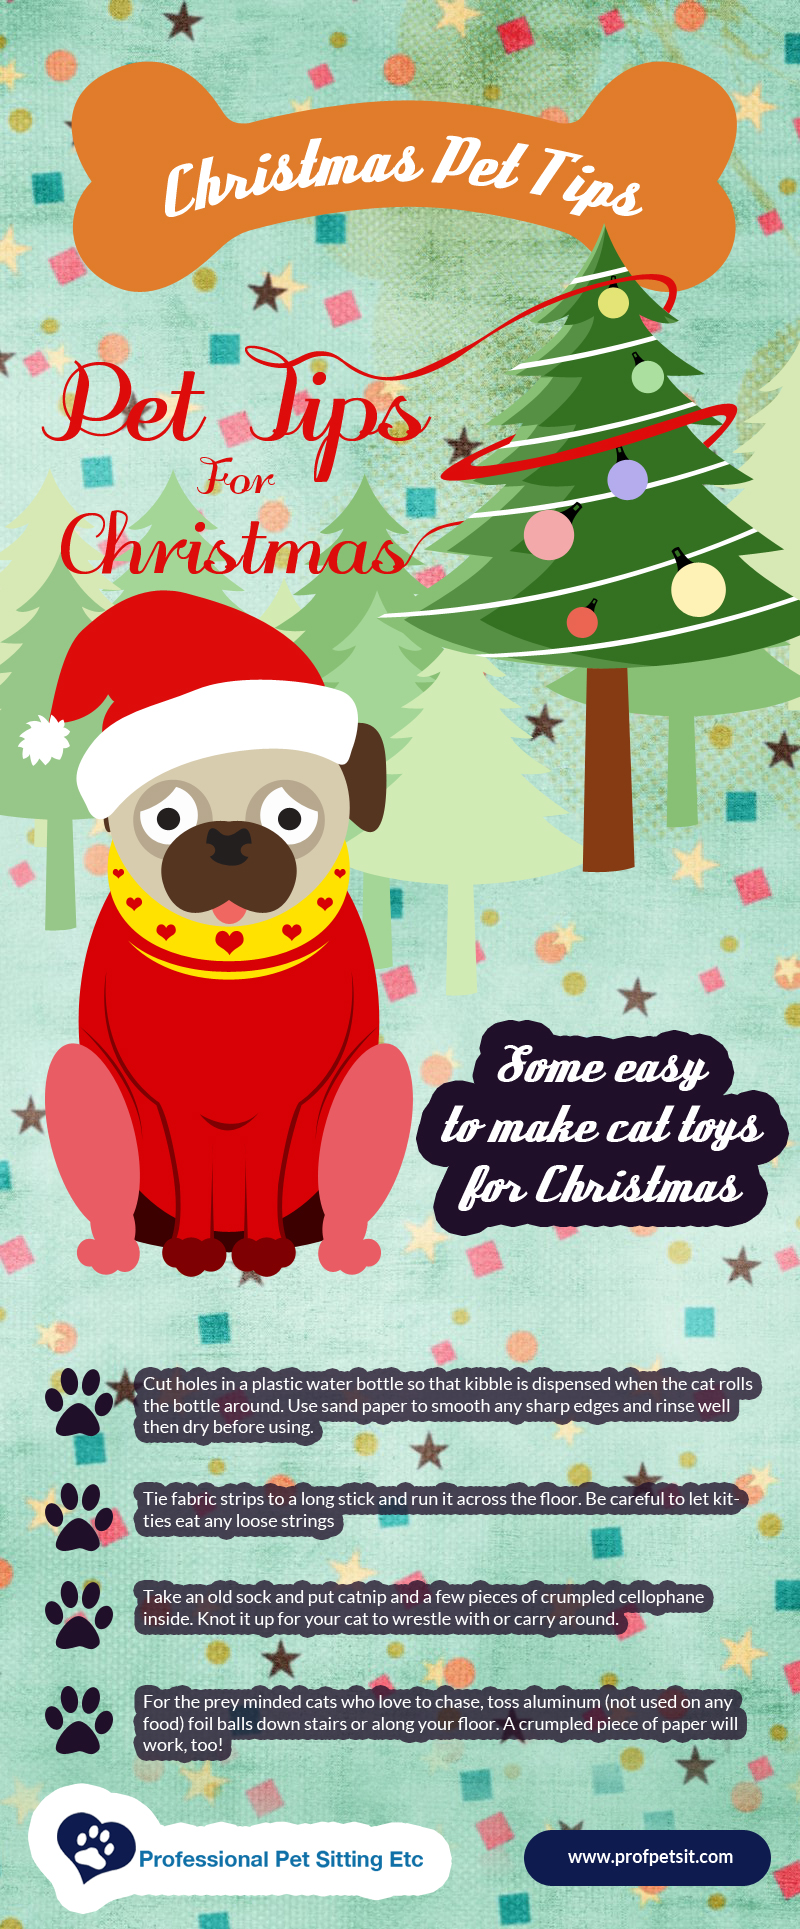 Info Graphic Christmas Pet Tips